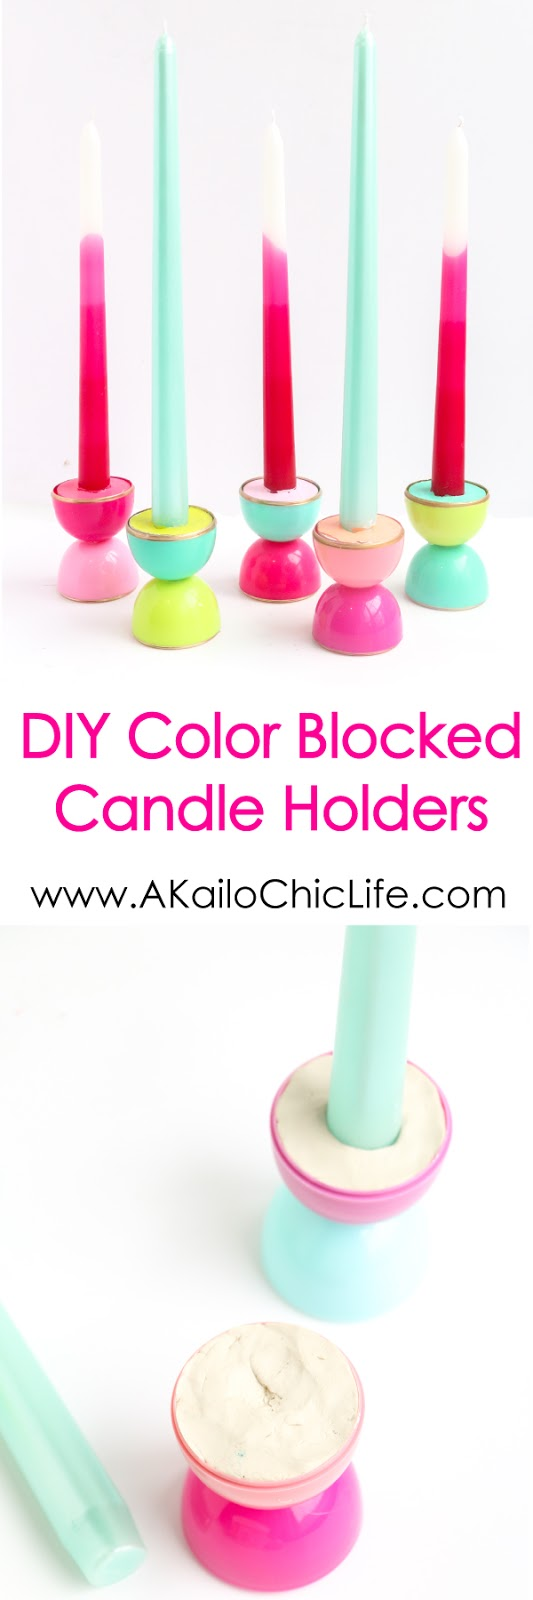 Turn leftover plastic Easter eggs into these colorful, gold rimmed taper candle holders. Perfect for a party, summer nights, or anytime.